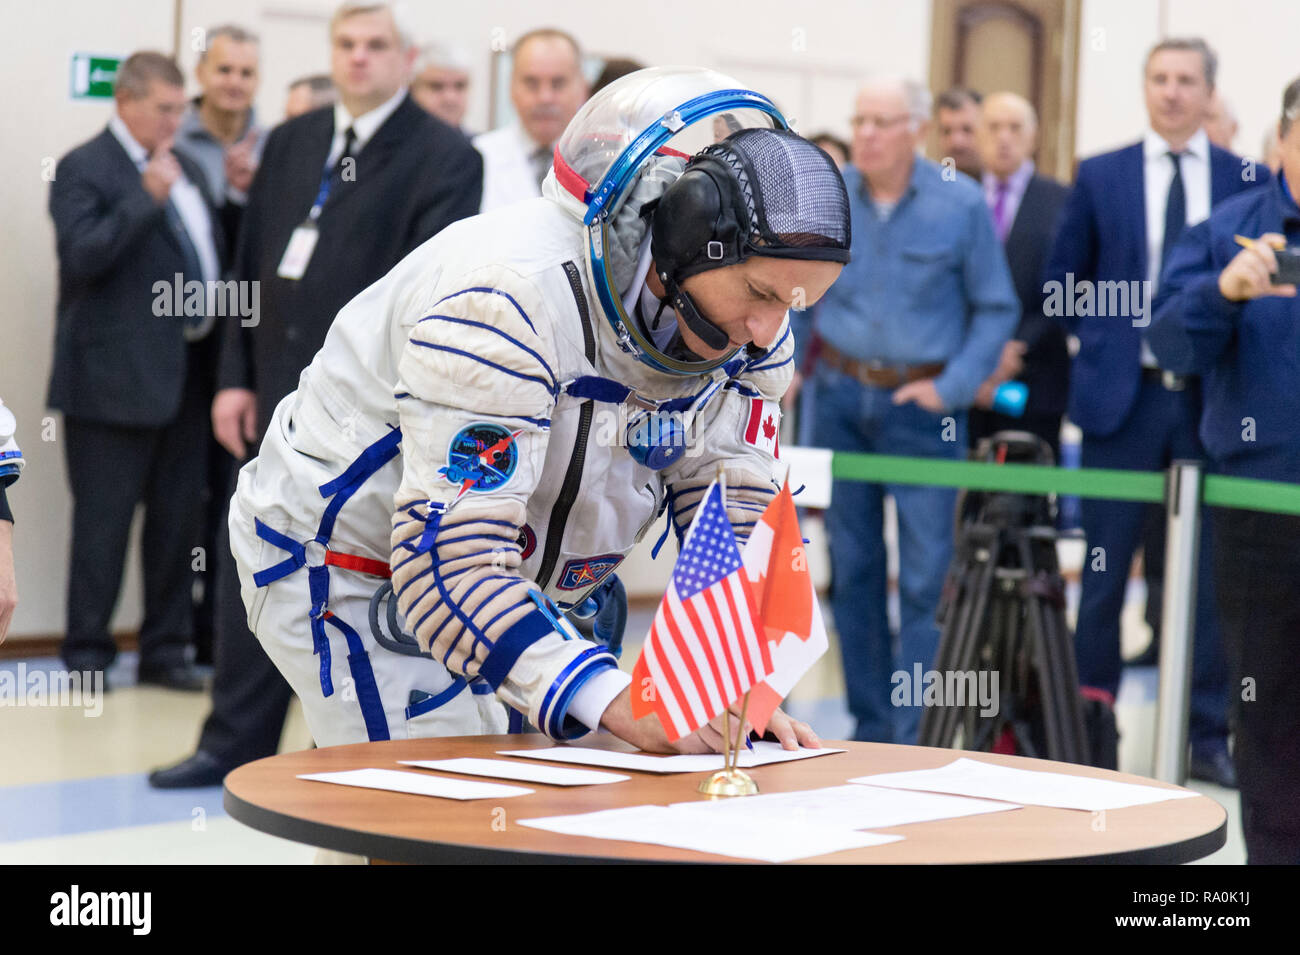 International Space Station Expedition 58 crew member David Saint-Jacques of the Canadian Space Agency signs in for the final day of qualification exams at the Gagarin Cosmonaut Training Center November 14, 2018 in Star City, Russia. The three are scheduled to launch December 3rd from the Baikonur Cosmodrome in Kazakhstan for a six-and-a-half month mission on the International Space Station. - Stock Image